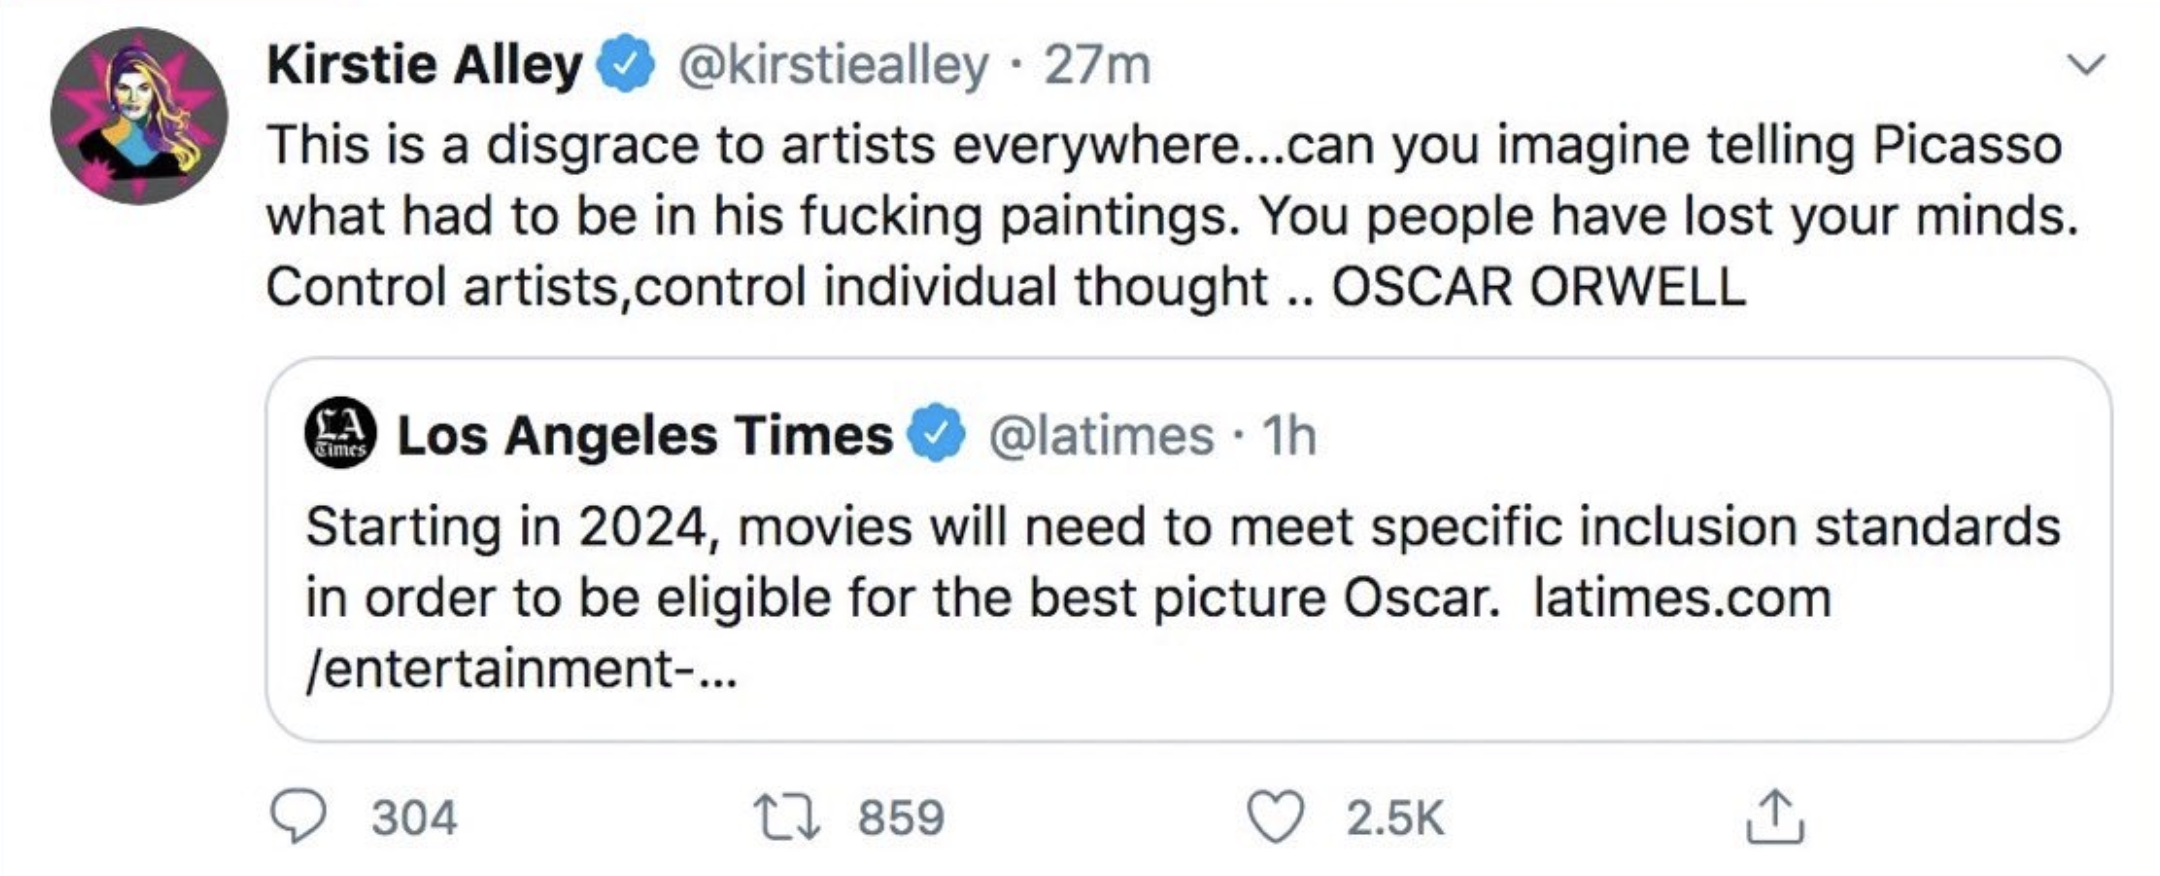 """She said, """"""""This is a disgrace to artists everywhere. Can you imagine telling Picasso what had to be in his fucking paintings? You people have lost your minds."""""""